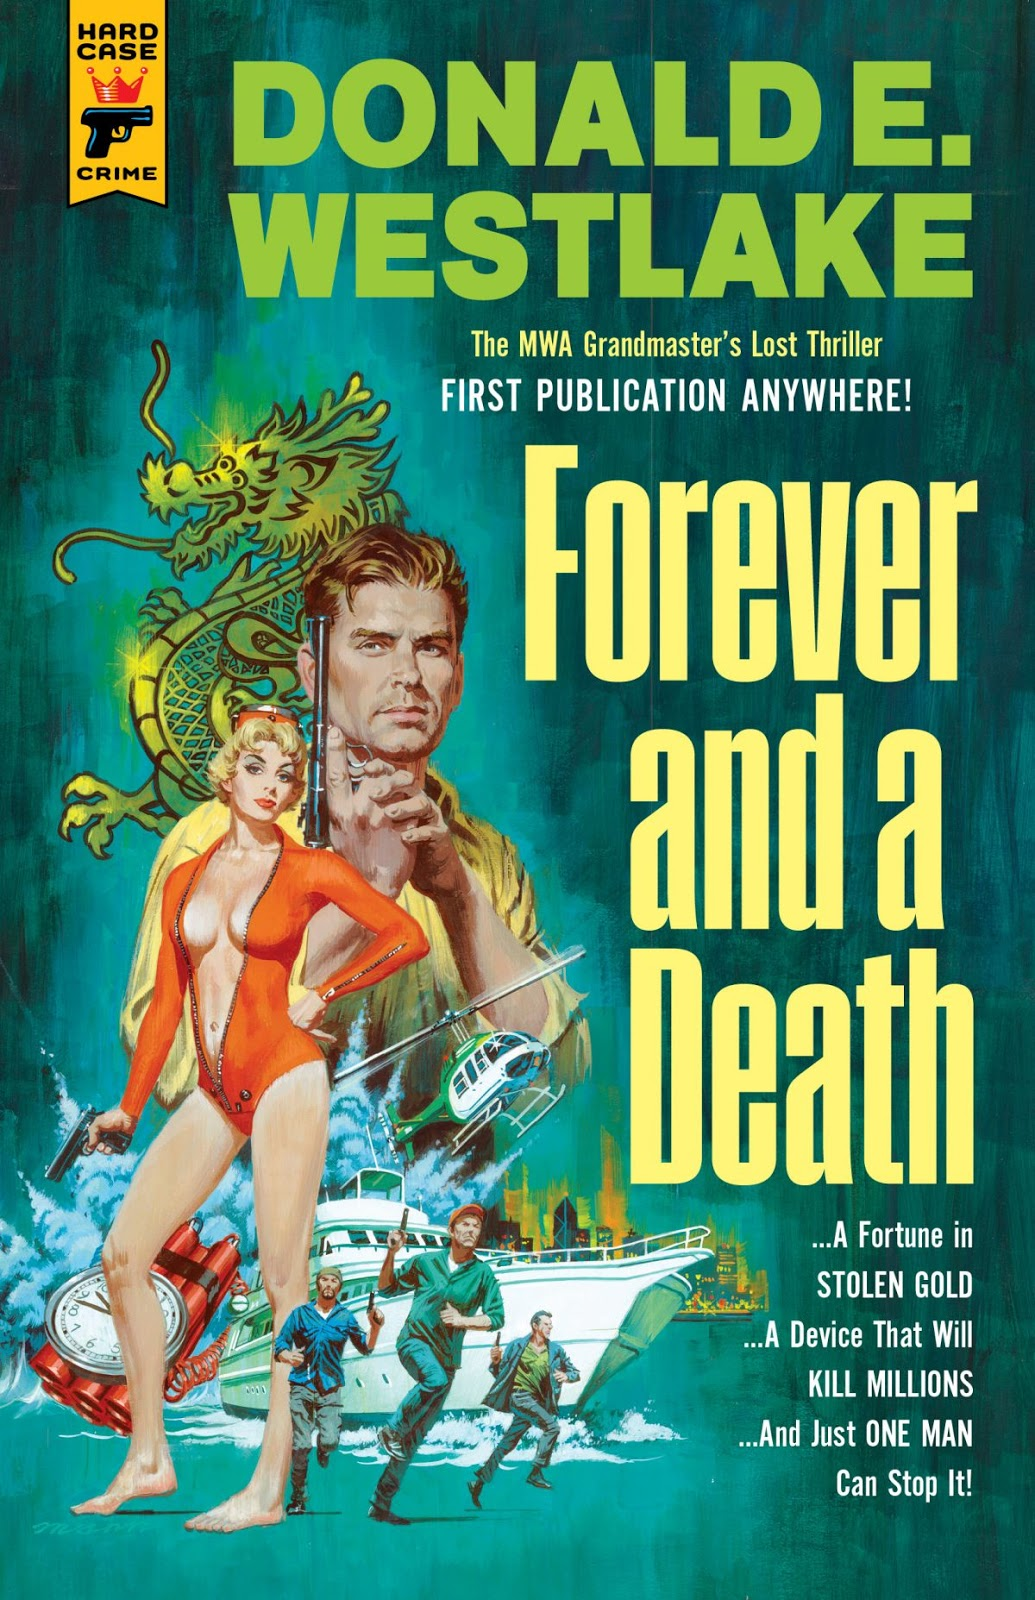 Forever And A Death By Donald E Westlake Hard Case Crime Cover Painting For The Novel Paul Mann